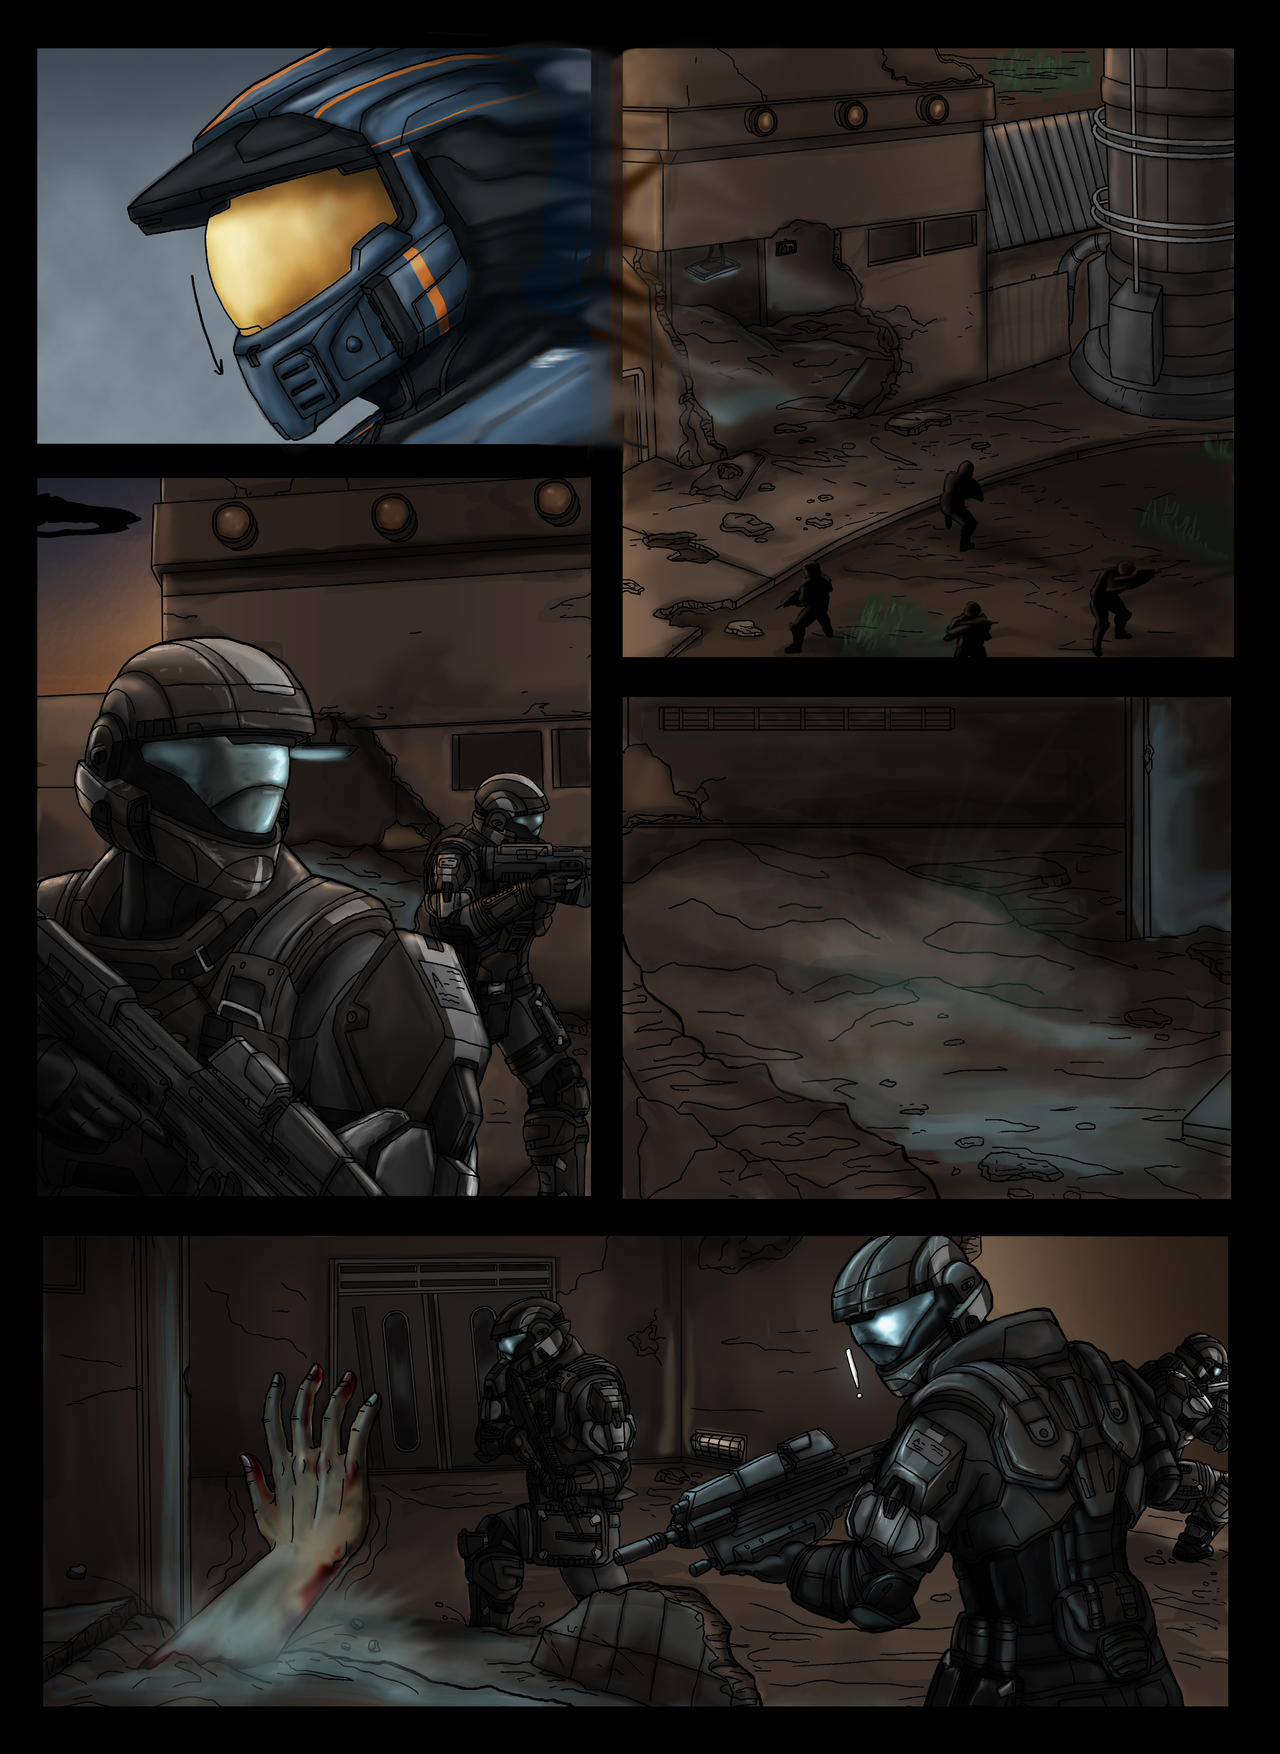 halo__dogtag_origins_page_3_by_guyver89-